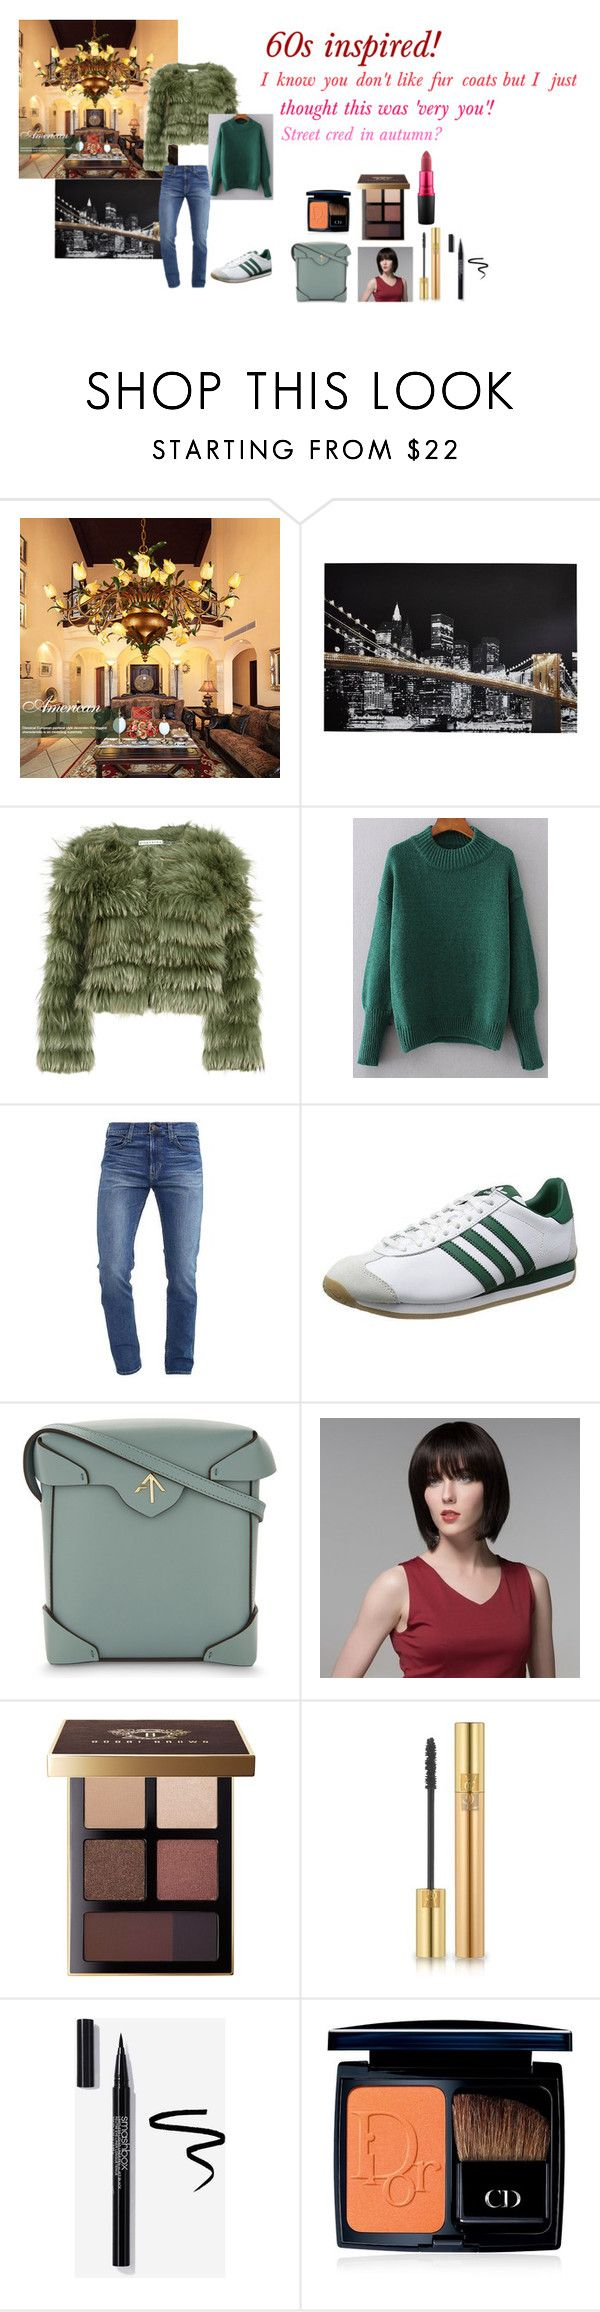 """""""For Mum (Ruth) - Mum's ideal wardrobe by me: 60s inspired!"""" by sarah-m-smith ❤ liked on Polyvore featuring Alice + Olivia, WithChic, Hollister Co., MANU Atelier, Bobbi Brown Cosmetics, Yves Saint Laurent, Christian Dior and MAC Cosmetics"""